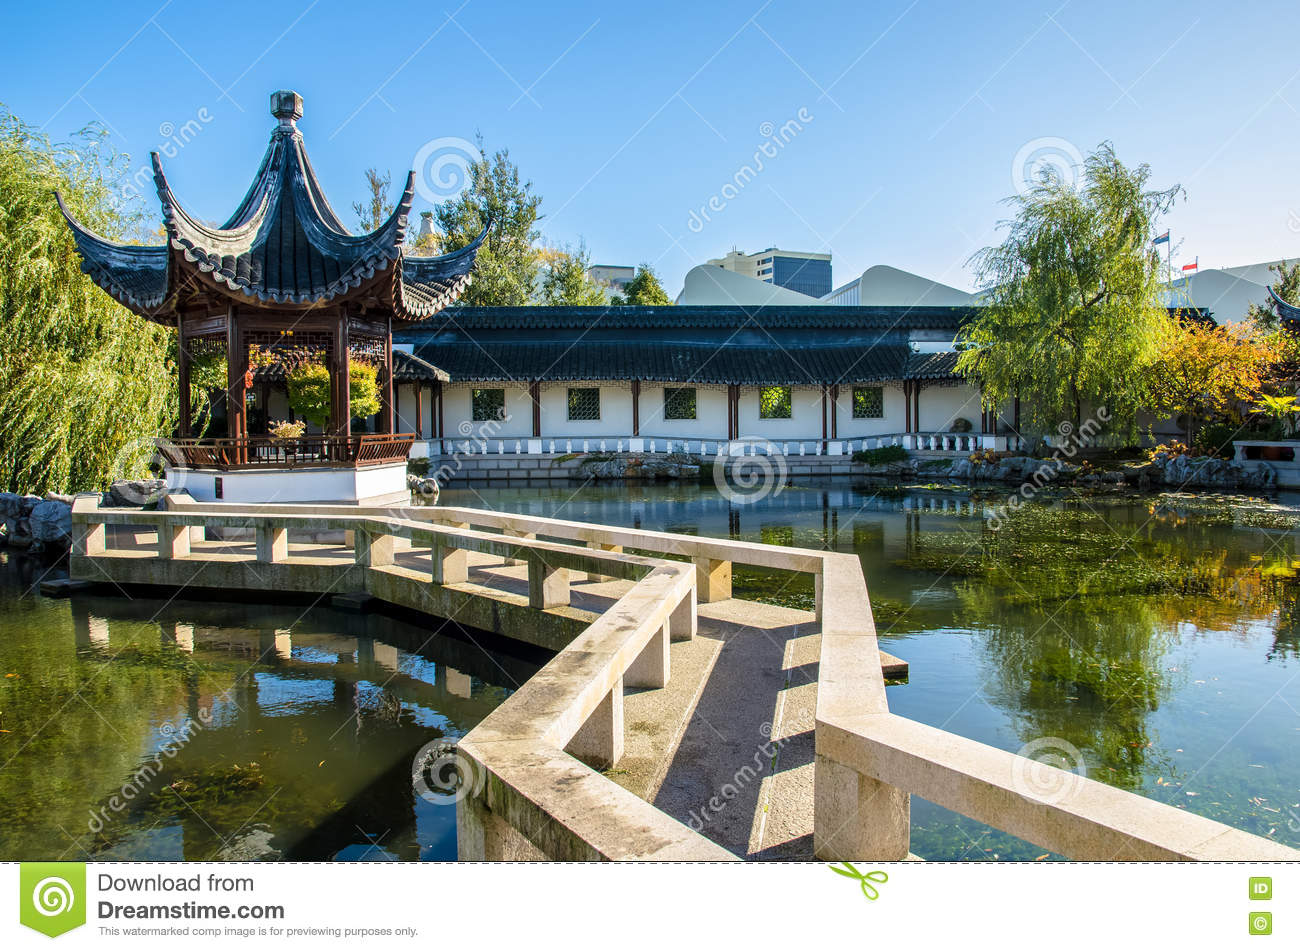 Fantastisch Download The Dunedin Chinese Garden In New Zealand. Editorial Photo   Image  Of Qing,